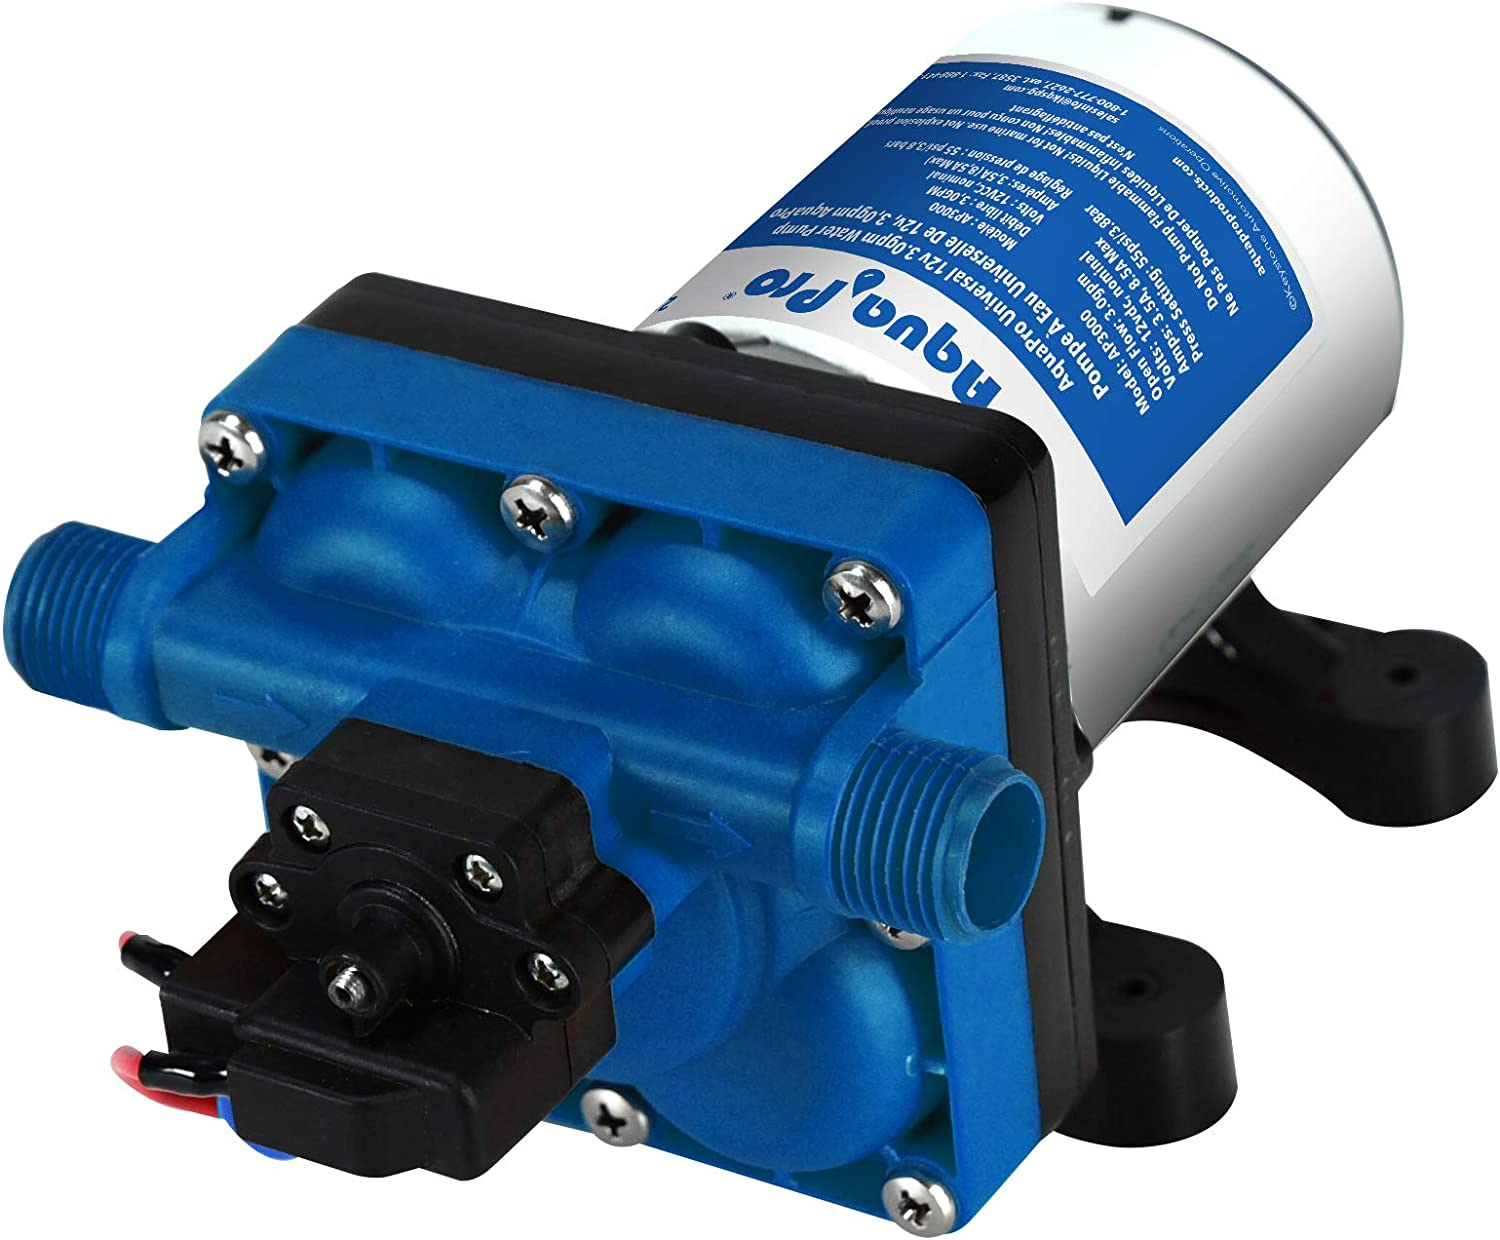 Aquapro 21847 3.0Gpm 12V Save money Pump Safety and trust MUL-Fixture